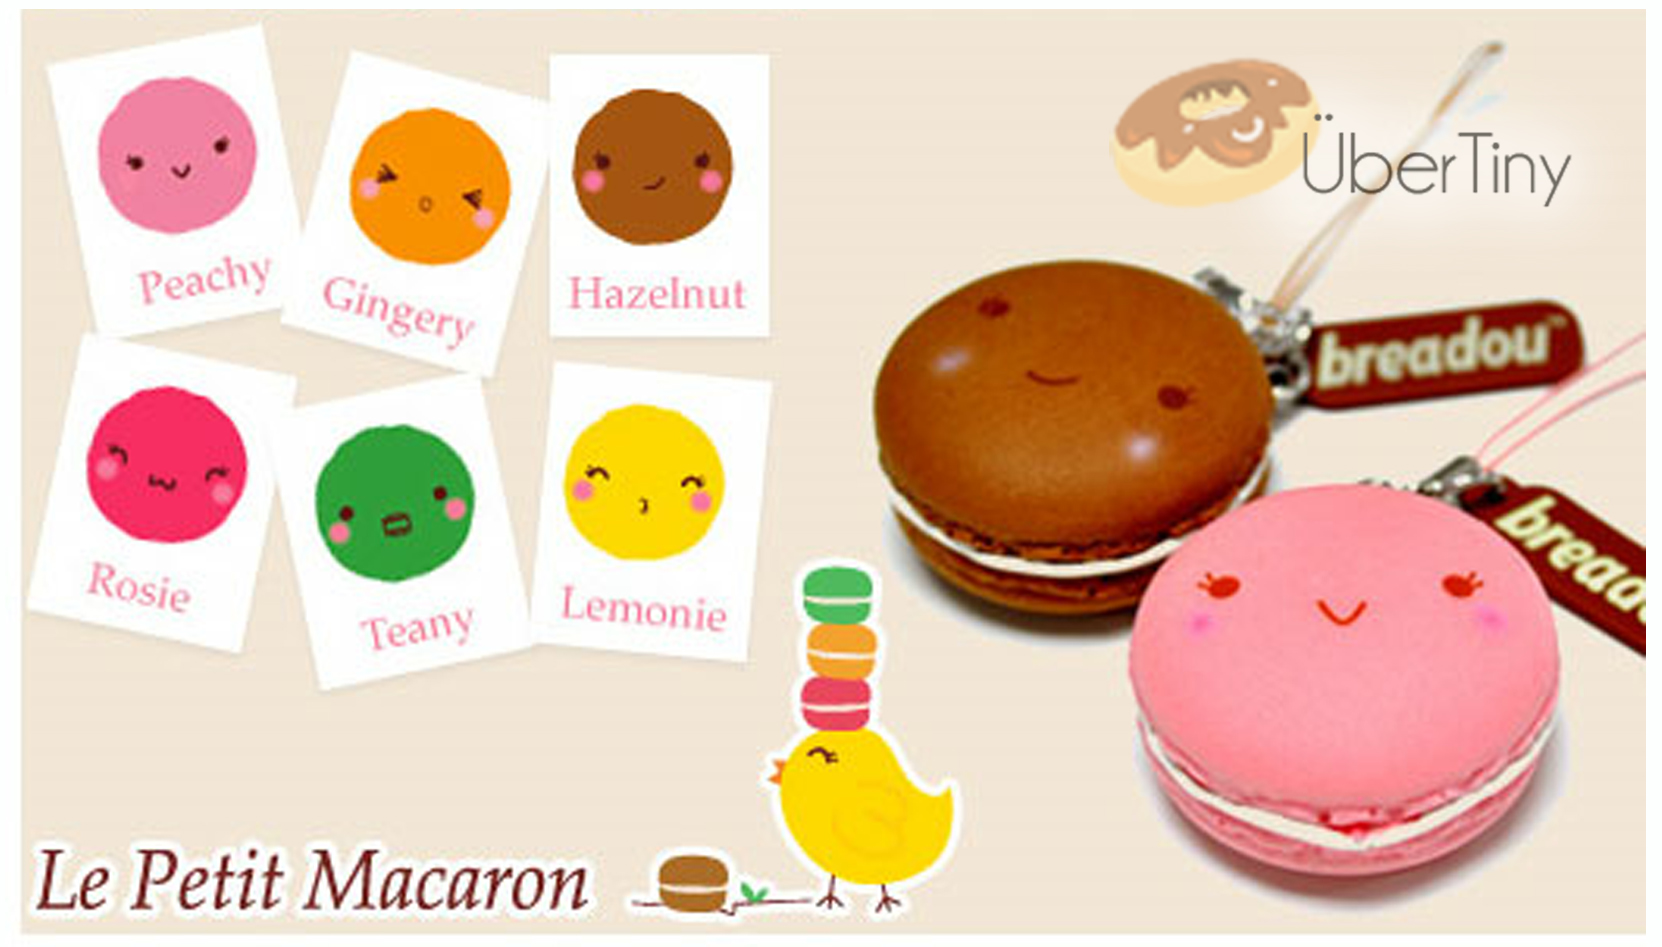 Breadou Le Petit Macaron Squishy- Original and in Packaging with Tag ? Uber Tiny ? Online Store ...